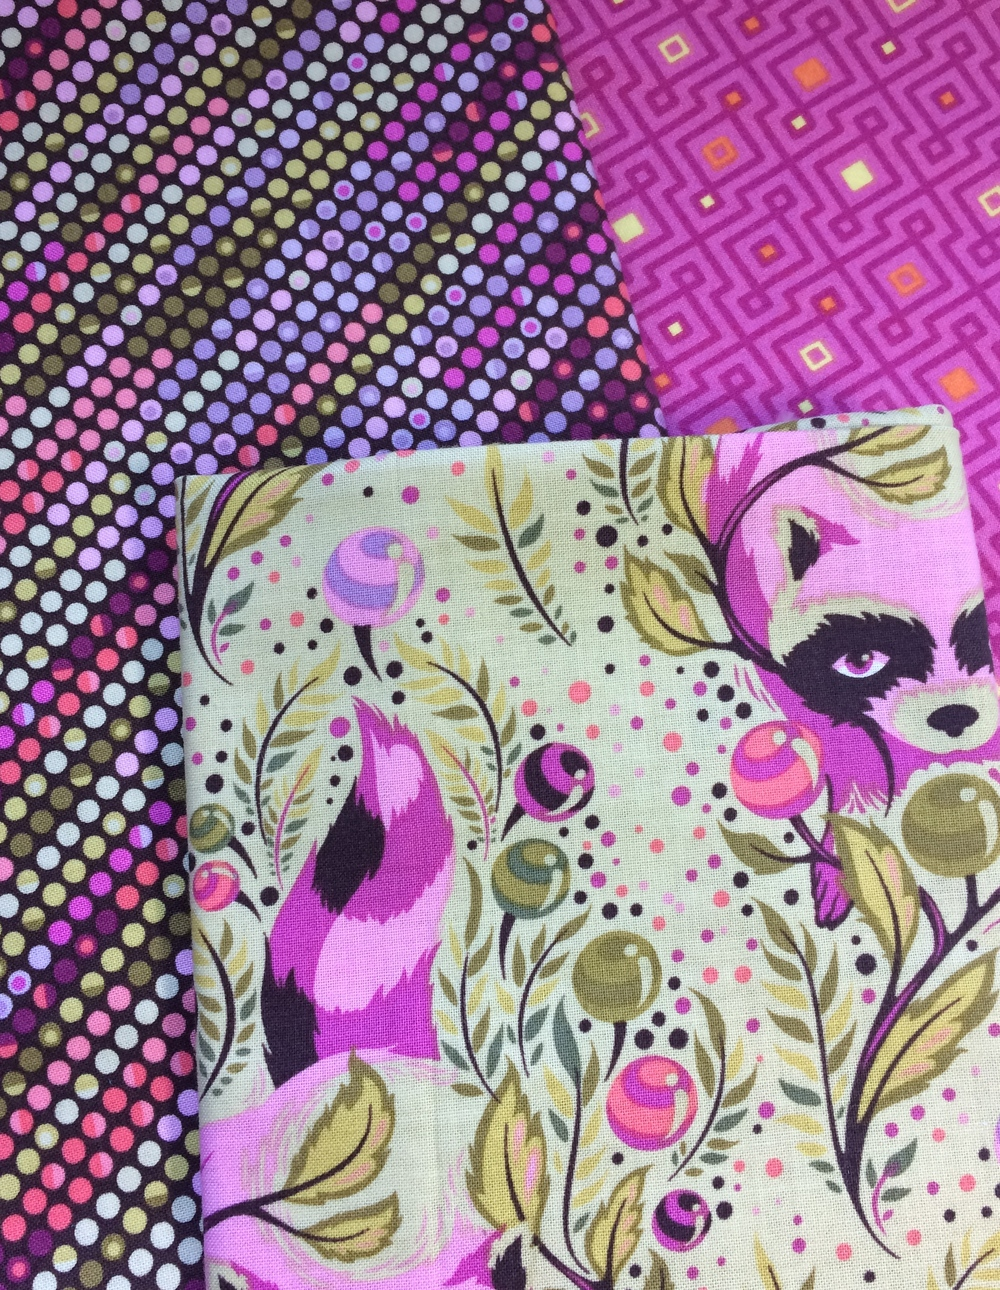 I love this Tula Pink fabric, but I struggle to use it!